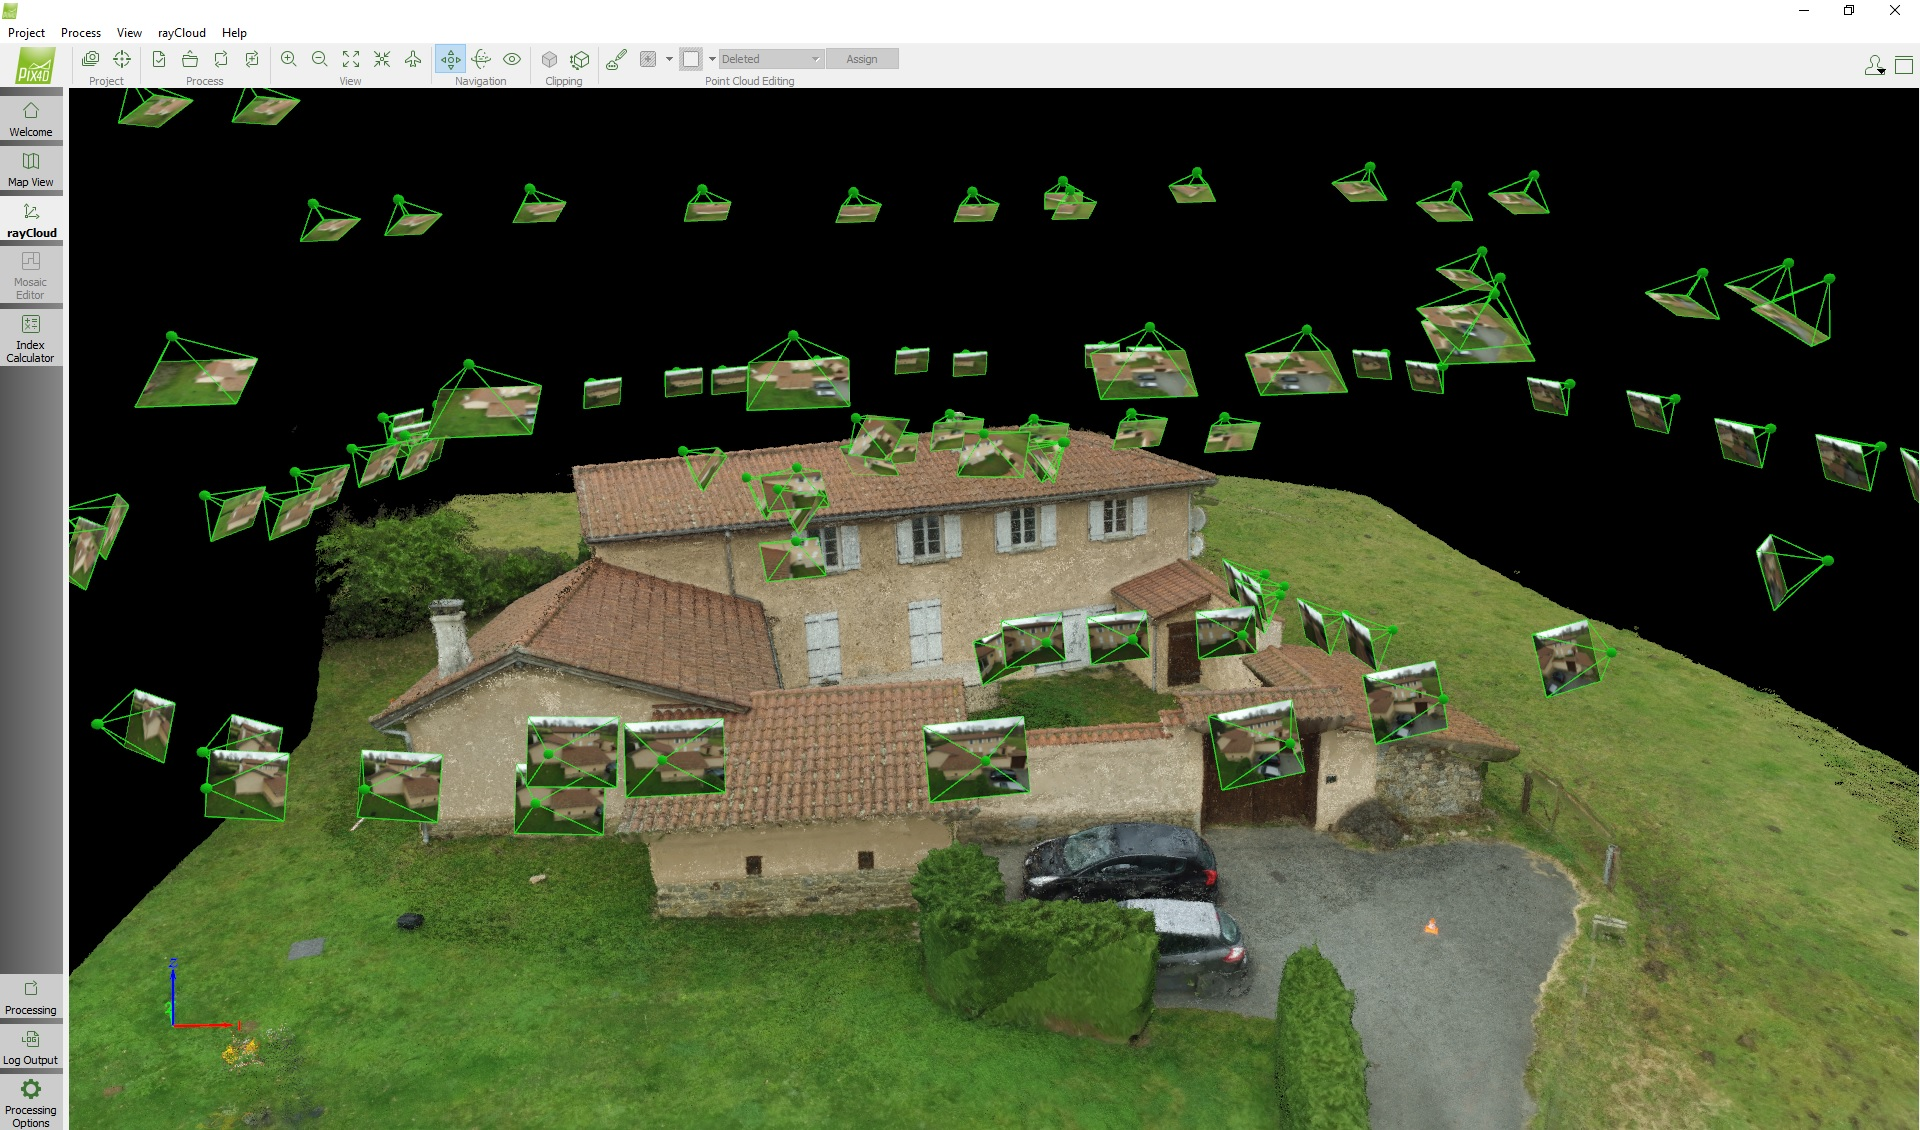 Images in Pix4D point cloud.